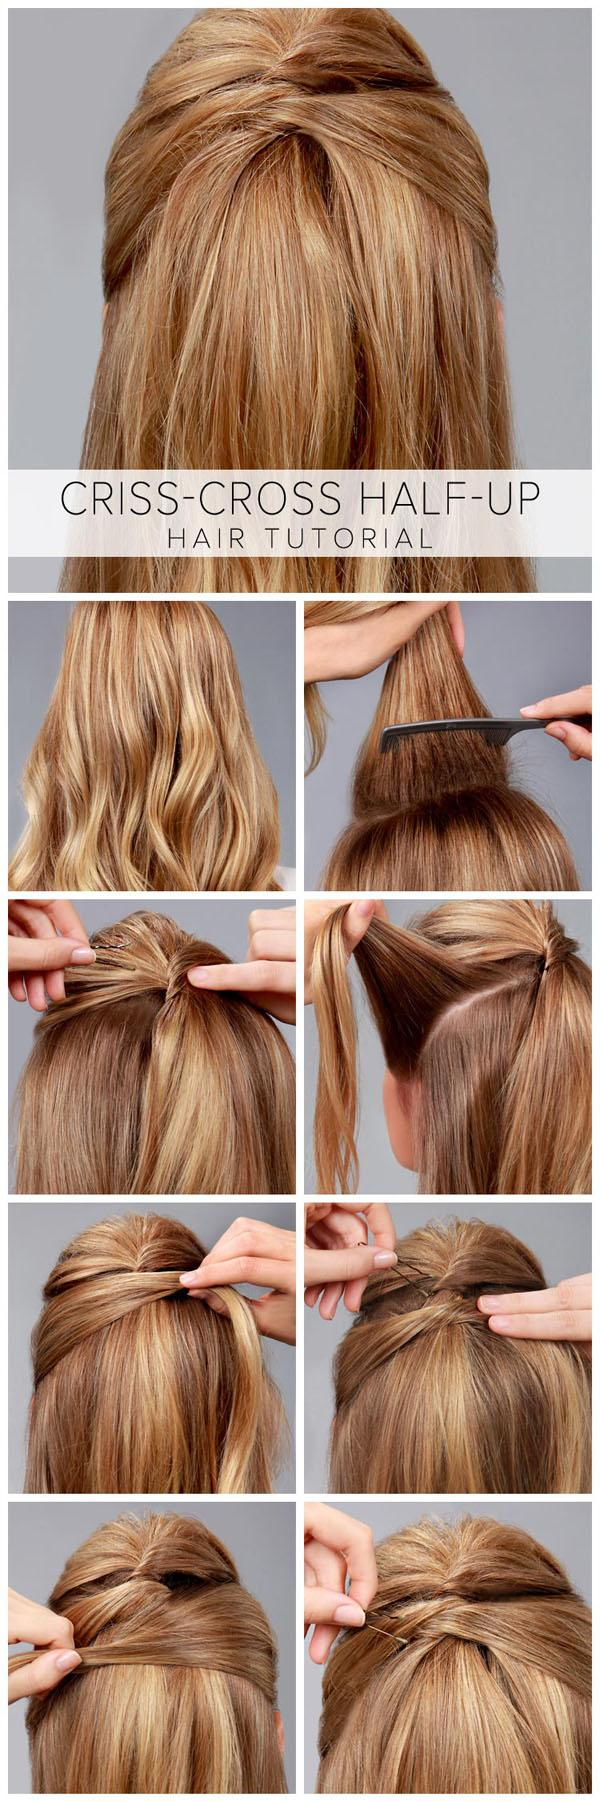 33 Quick And Easy Hairstyle For Busy Women